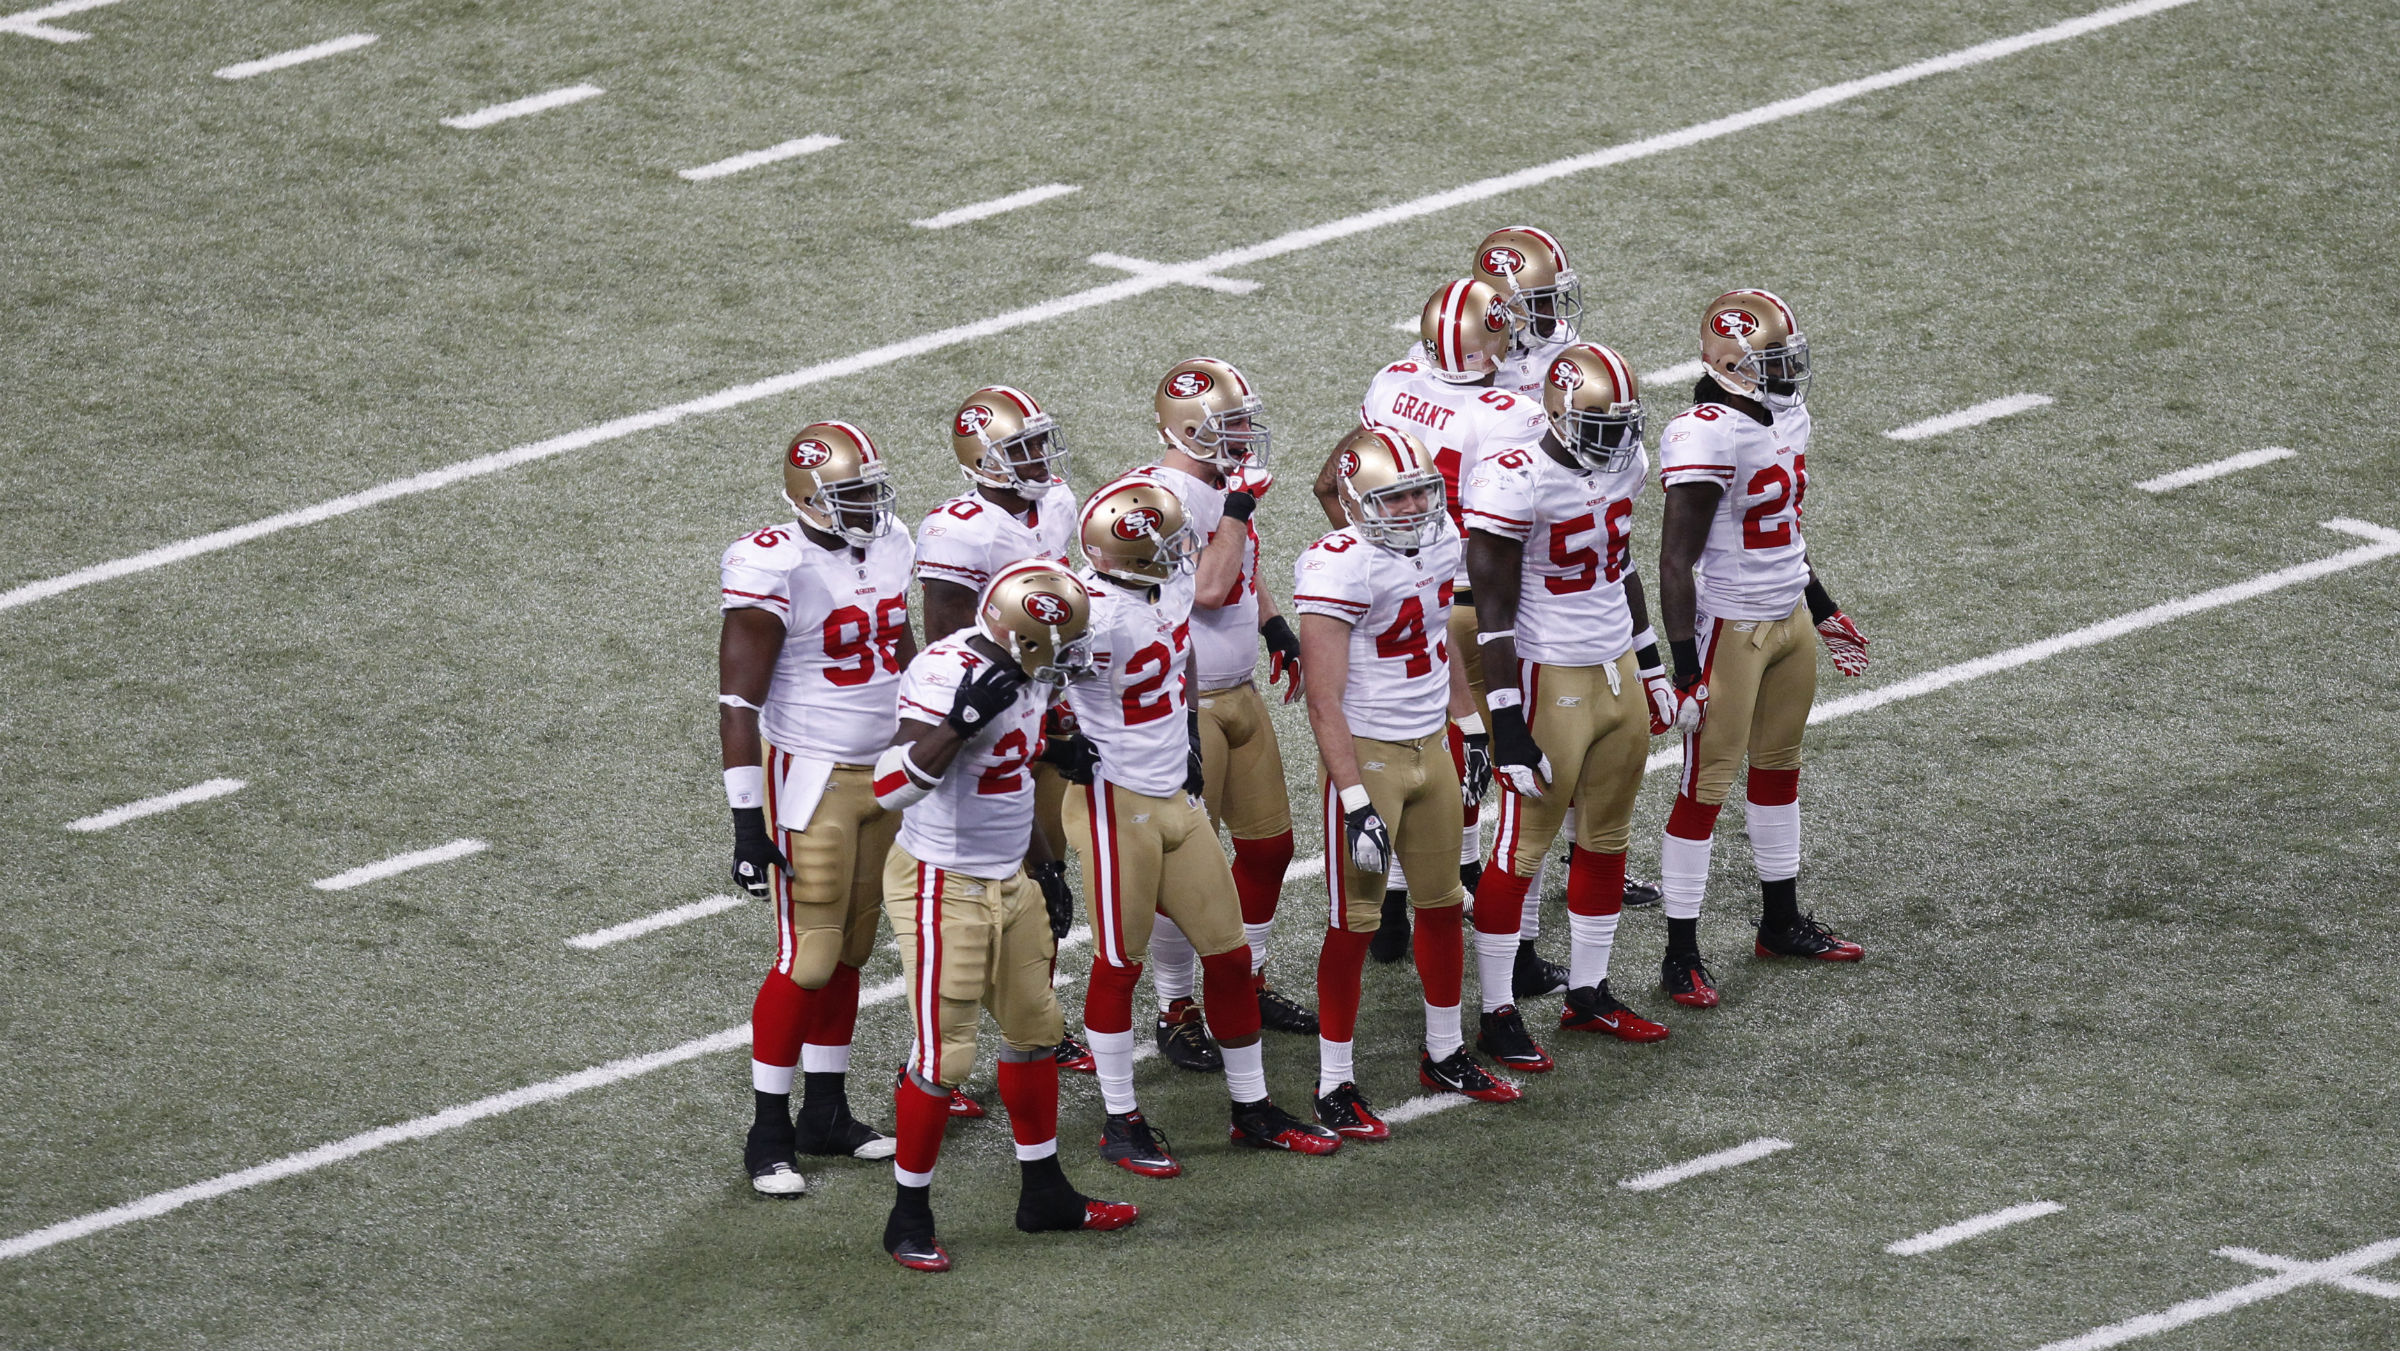 Members of the San Francisco 49ers wait for a kick off during the third quarter of an NFL football game against the St. Louis Rams Sunday, Jan. 1, 2012, in St. Louis.